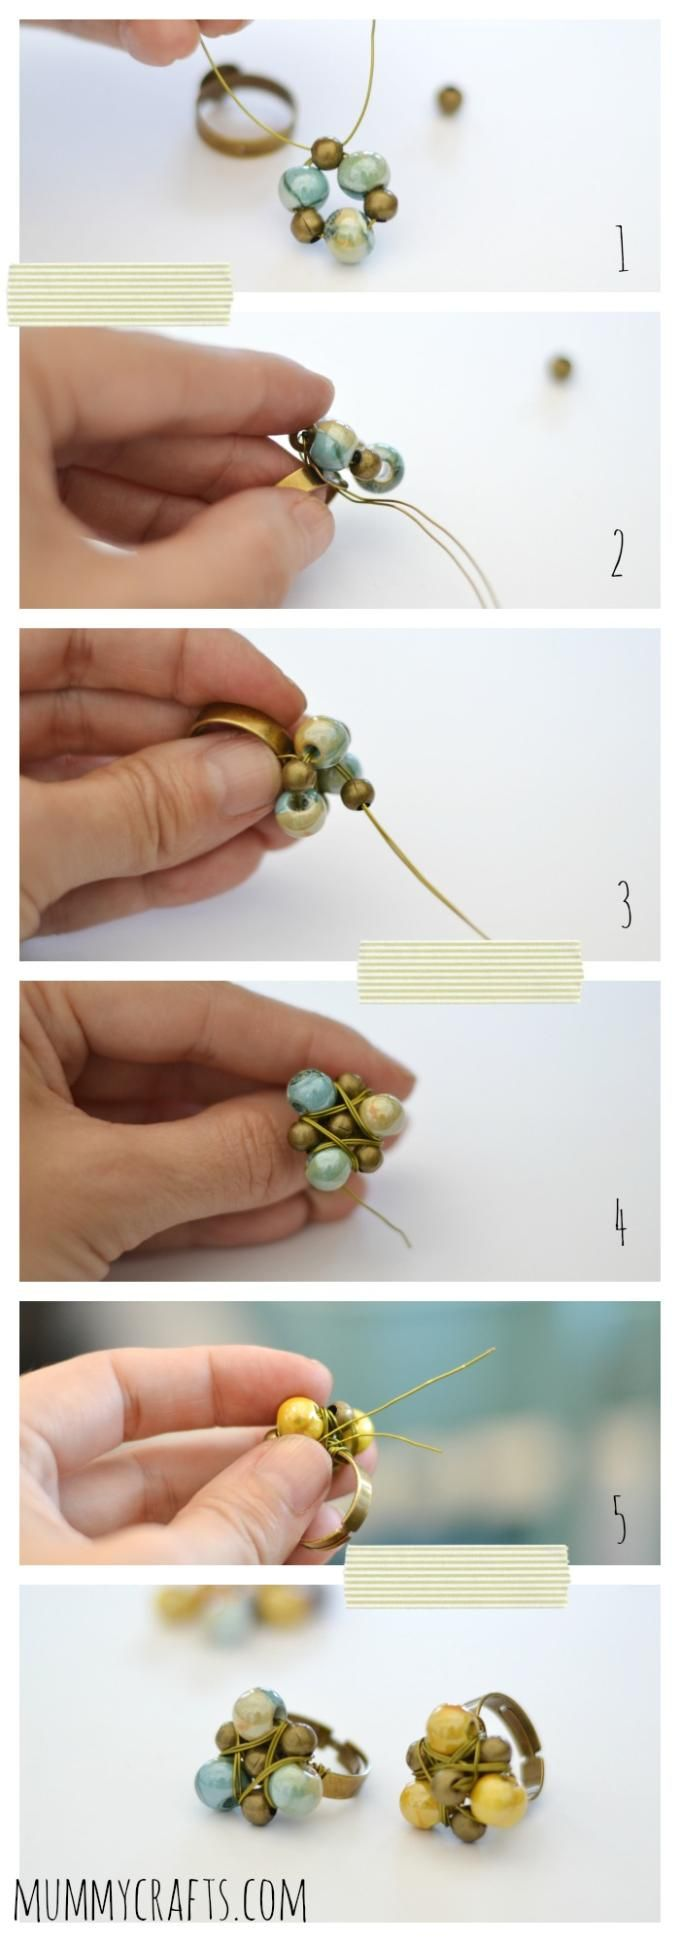 wire ring. Craft ideas 5327 - LC.Pandahall.com | Jewelry Making ...